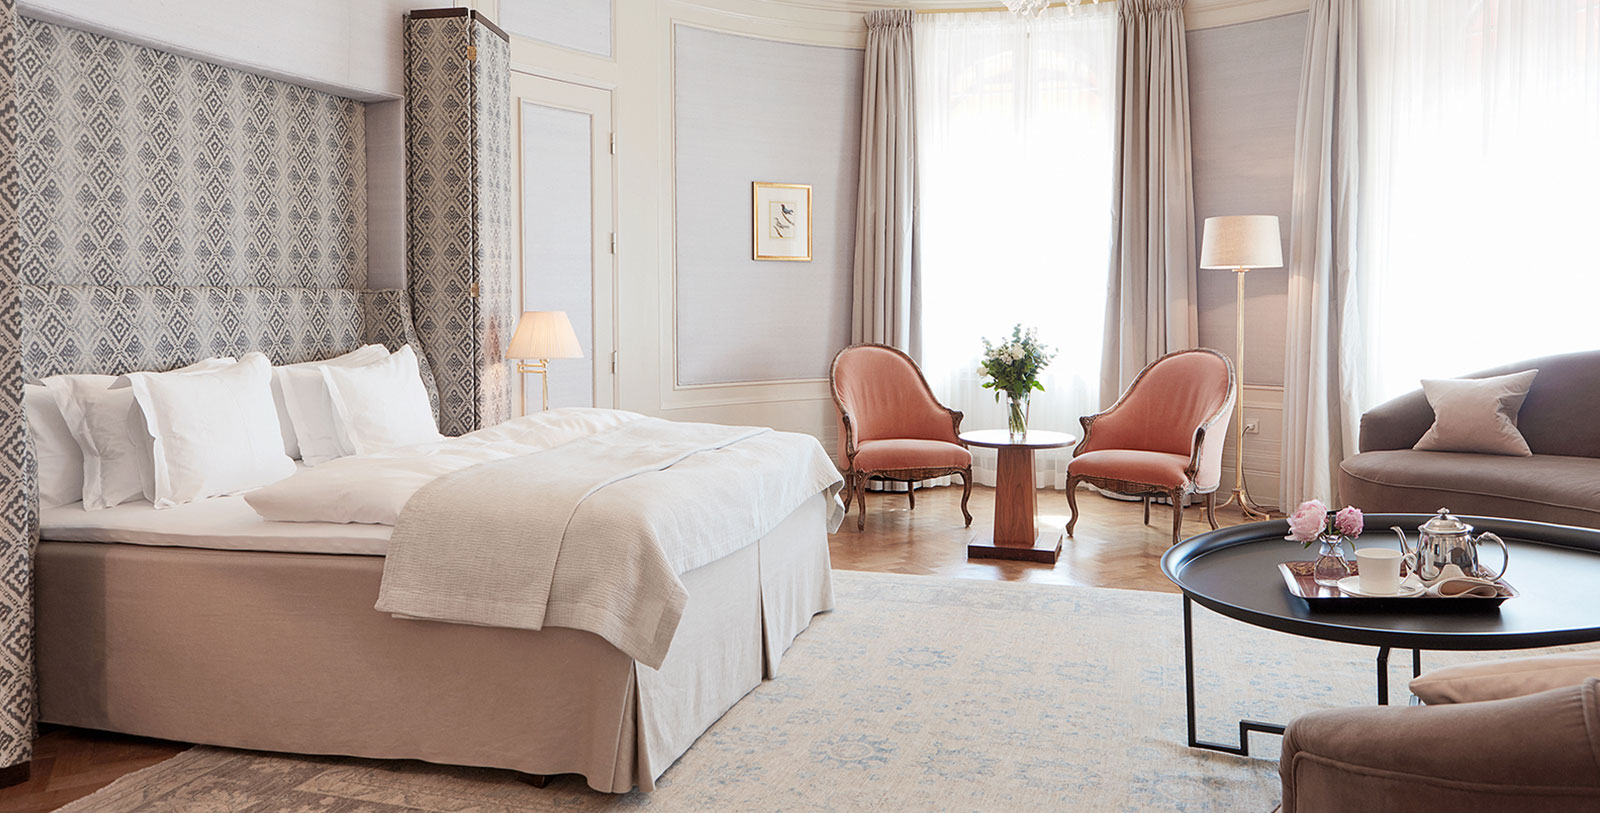 Image of Accommodations, Hotel Diplomat, Stockholm Sweden, Accommodations